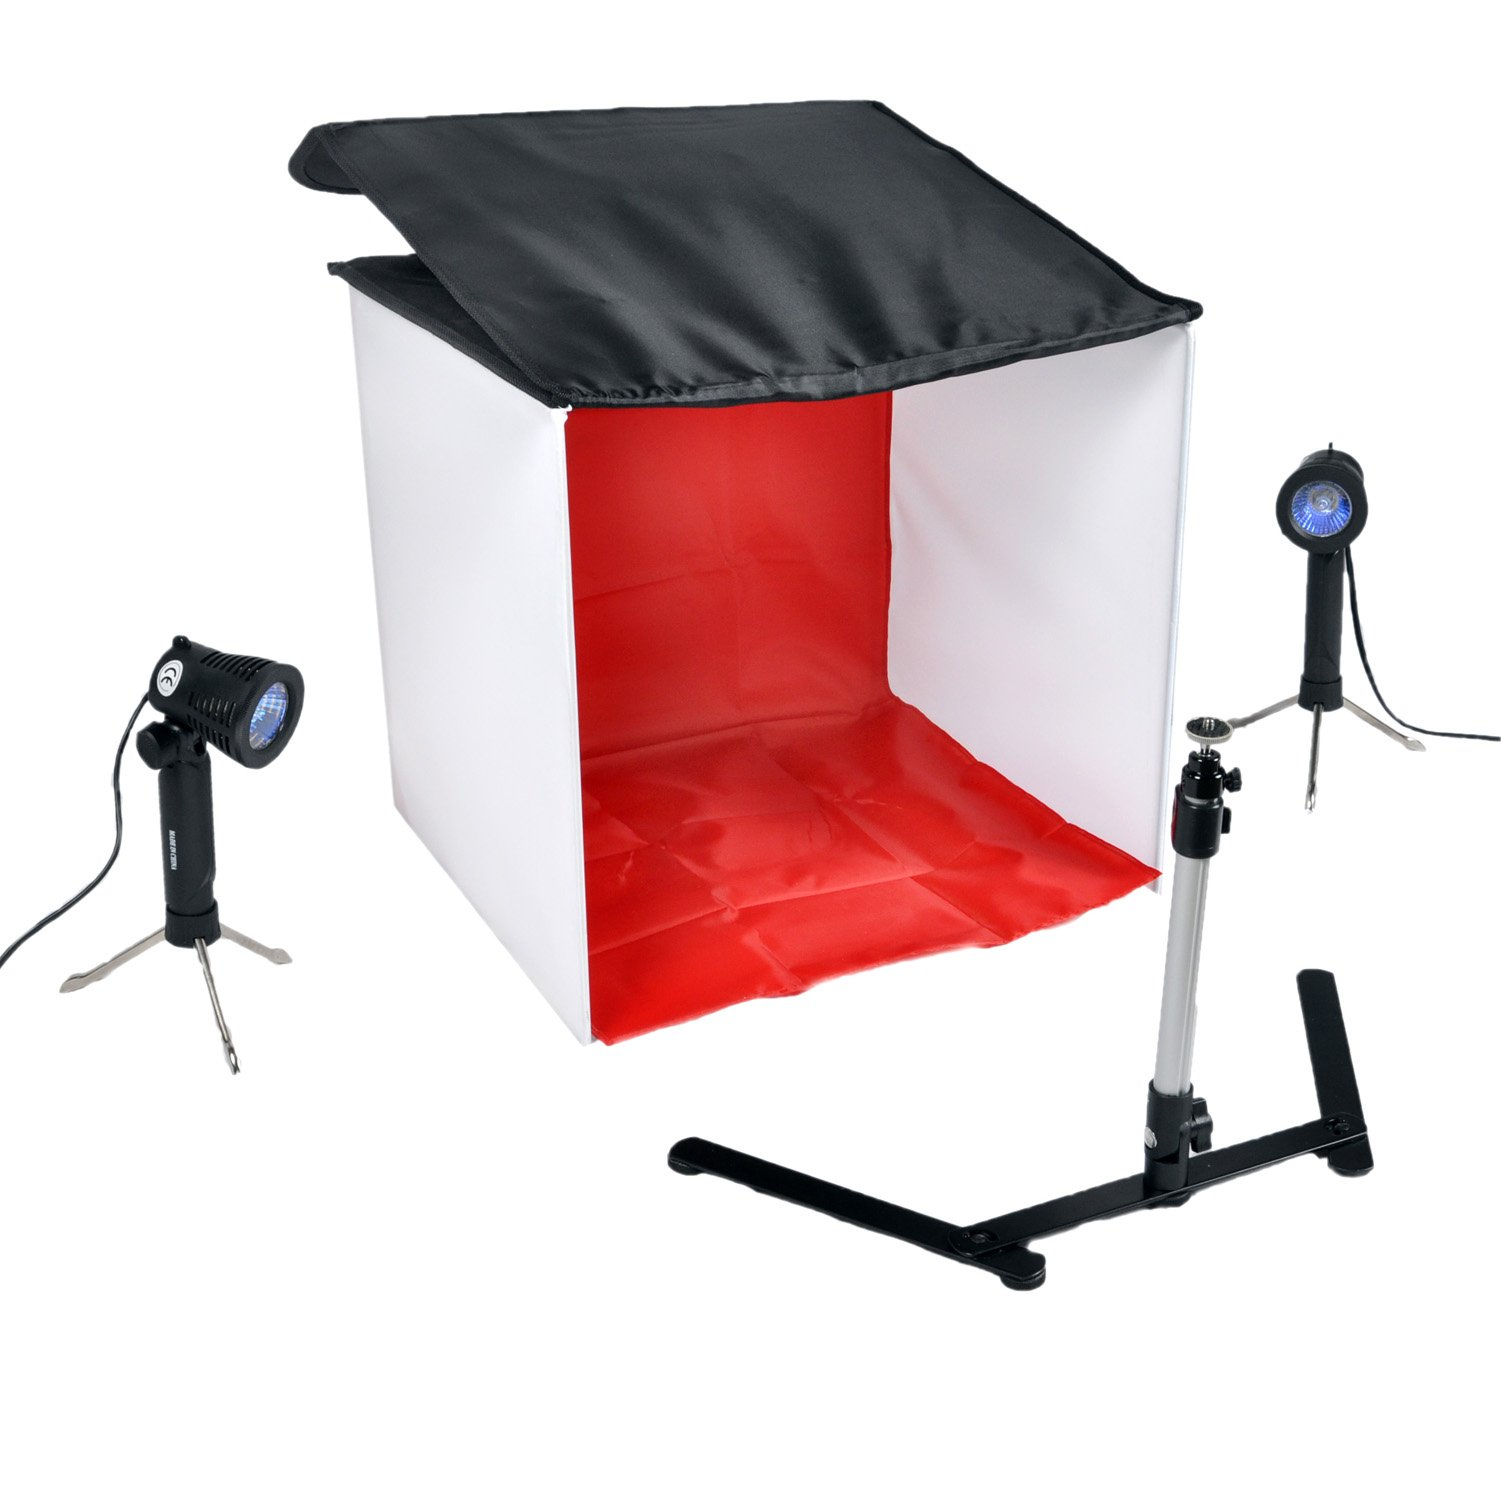 CowboyStudio Table Top Photo Studio Light Tent Kit in a Box - 1 Tent, 2 Light Set, 1 Stand, 1 Case by CowboyStudio